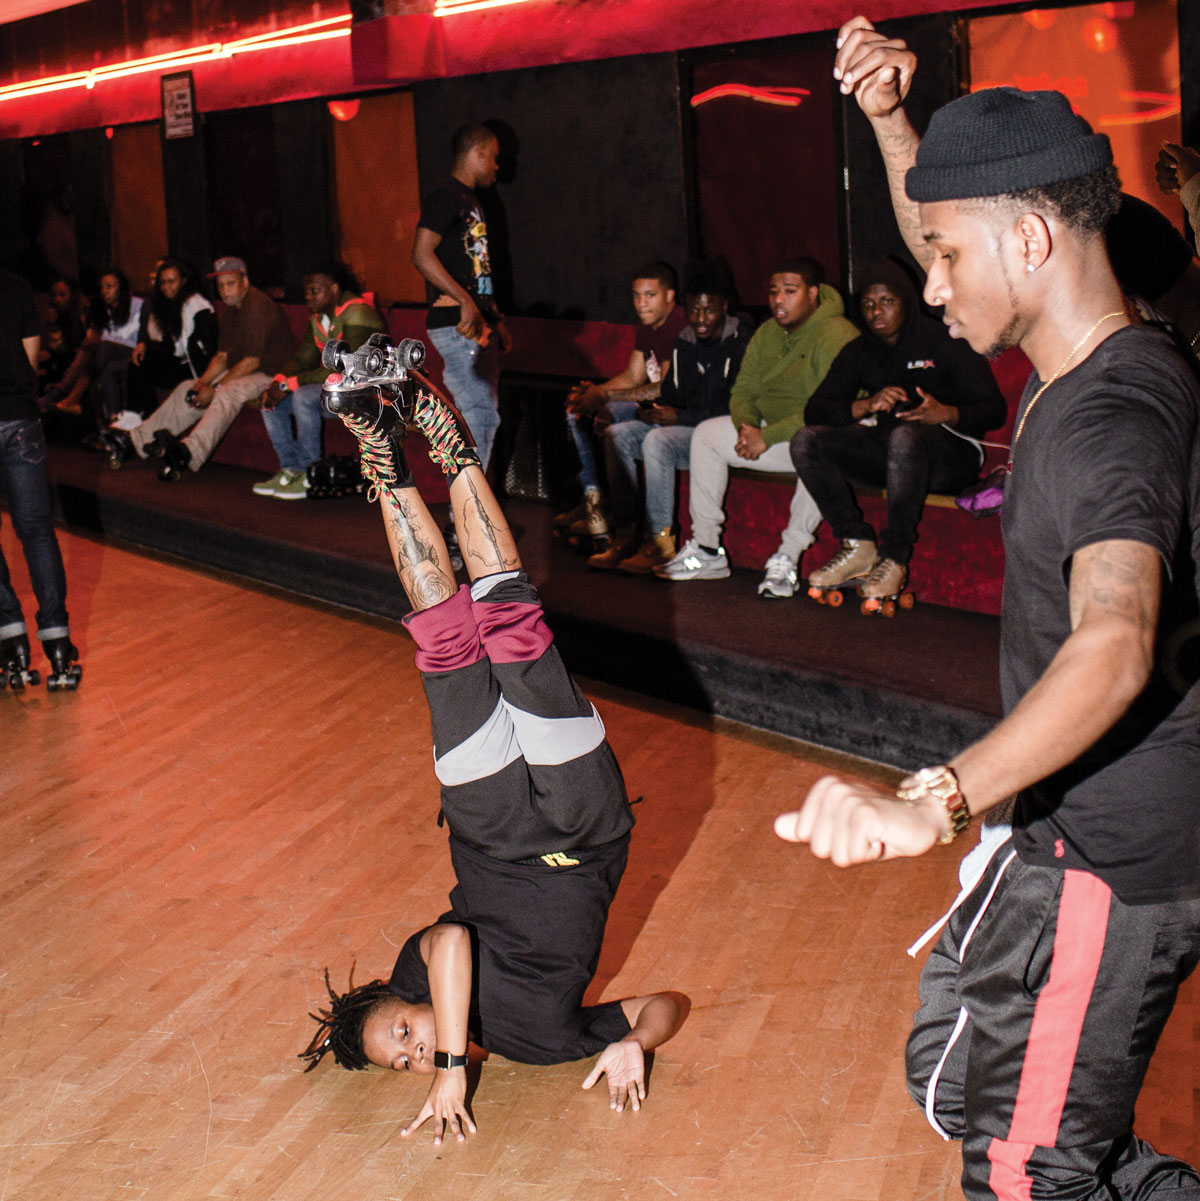 Roller Skate Sneakers >> Sunday Night Skate: Clubs don't have anything on Cascade's ...